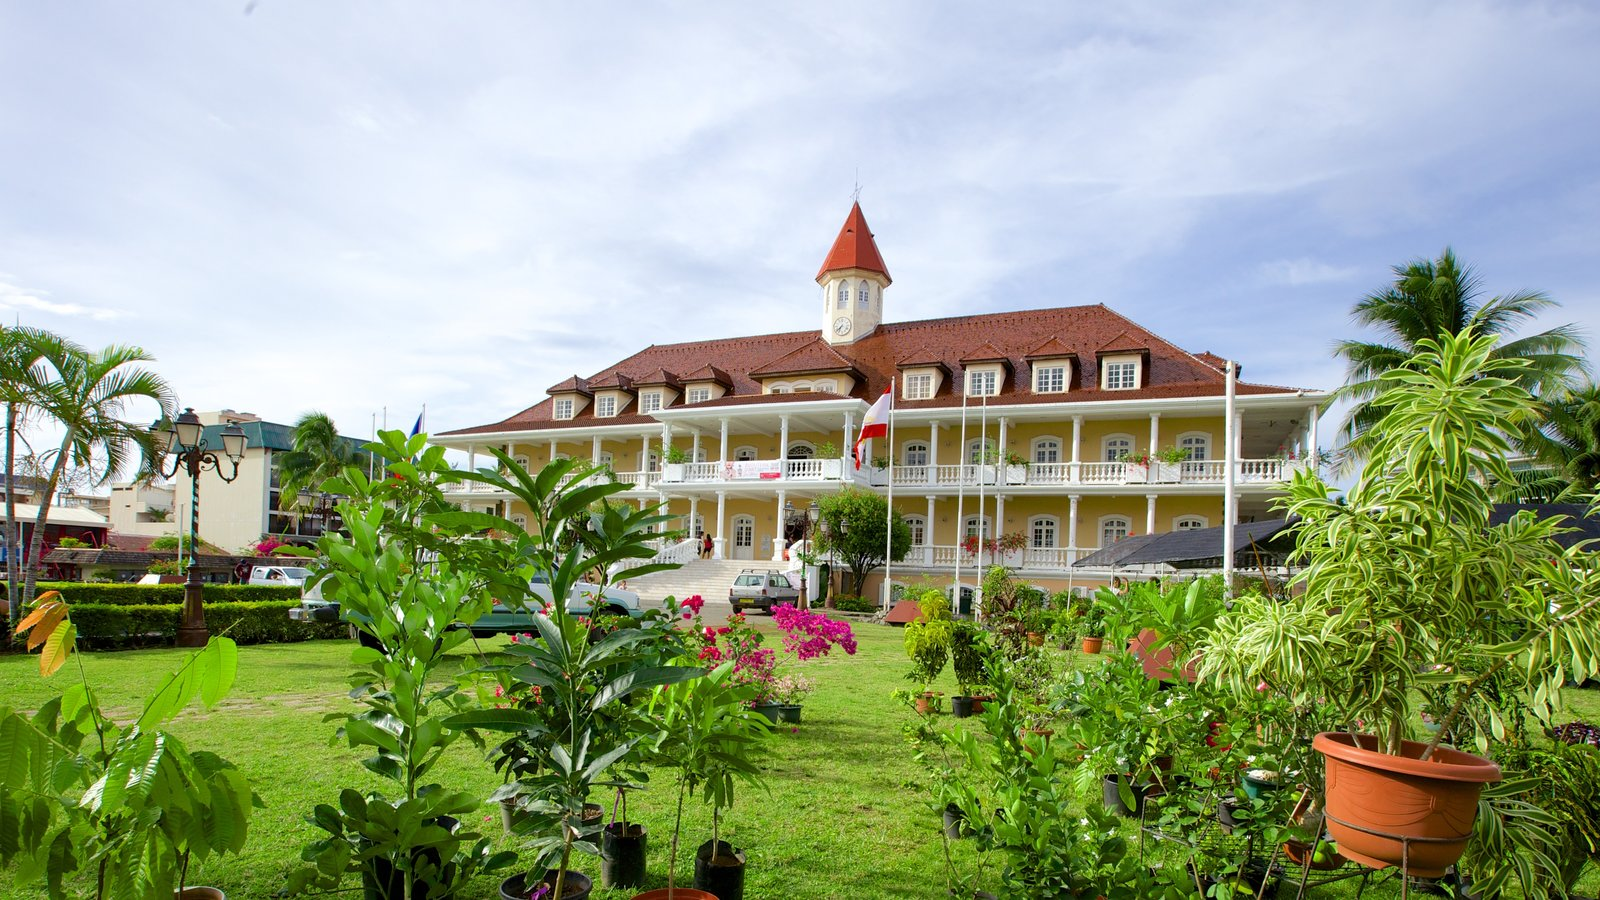 Papeete Town Hall which includes a garden and heritage architecture